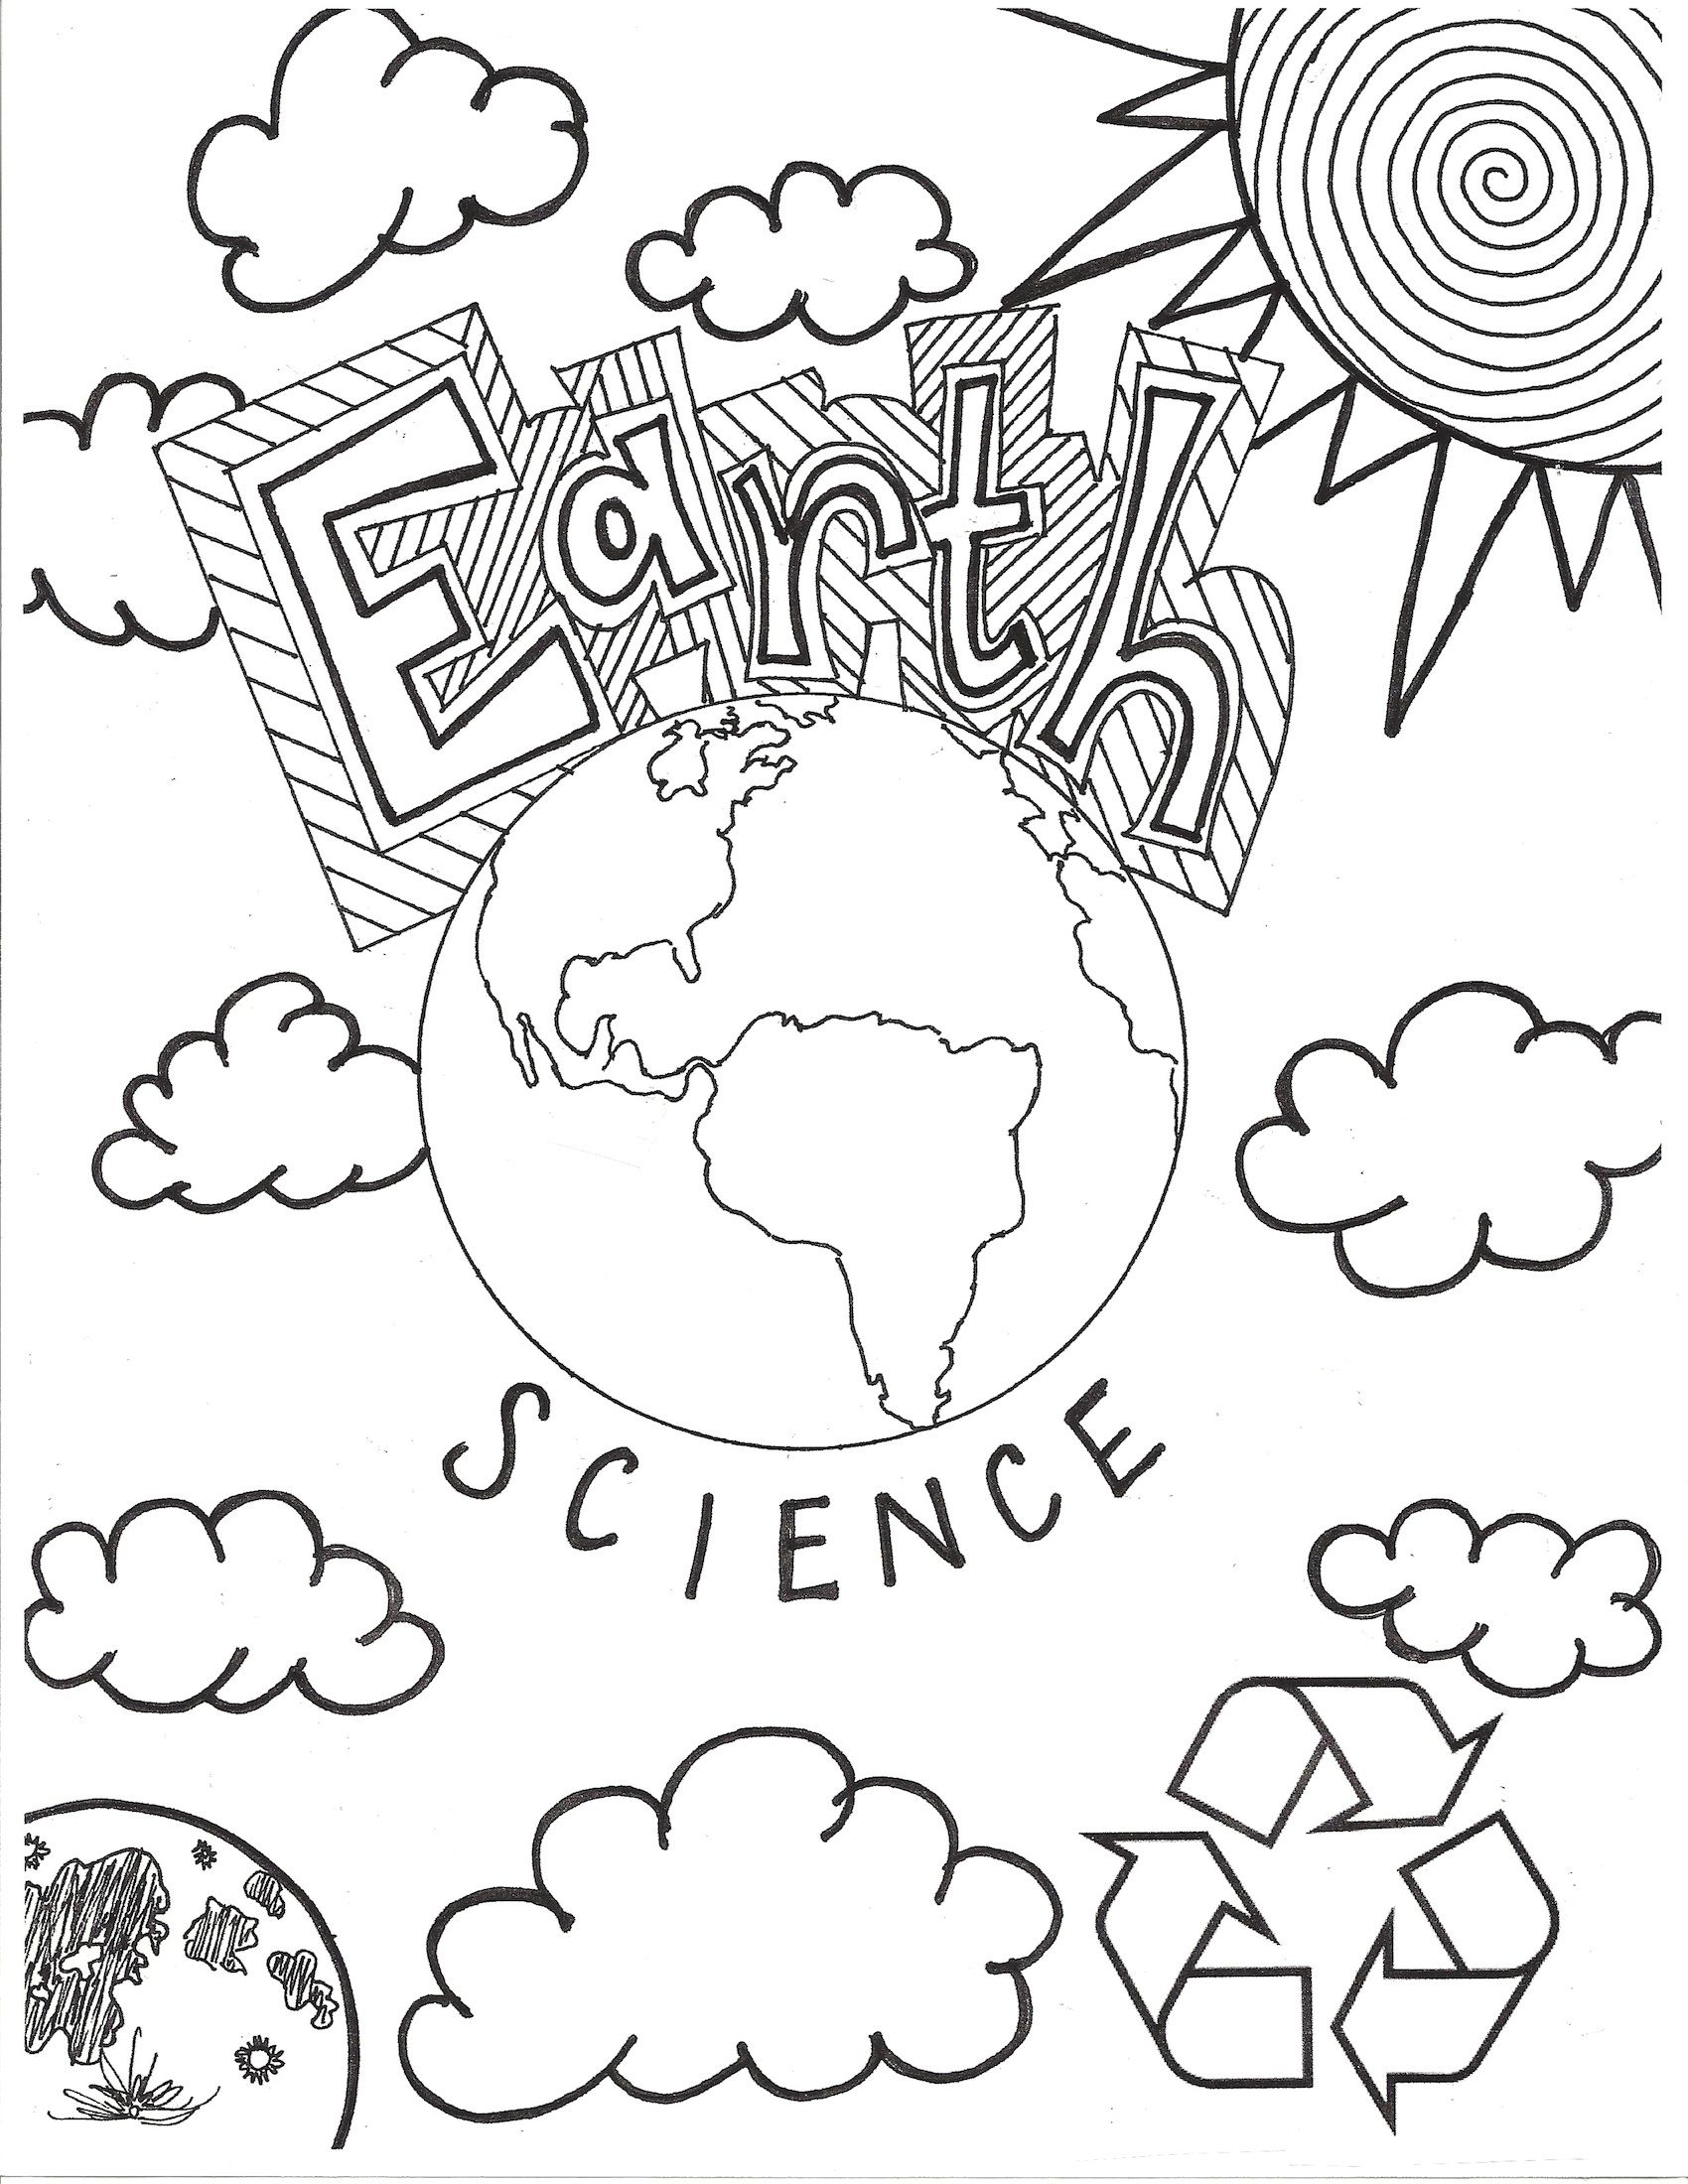 earth science coloring page cover page middle school